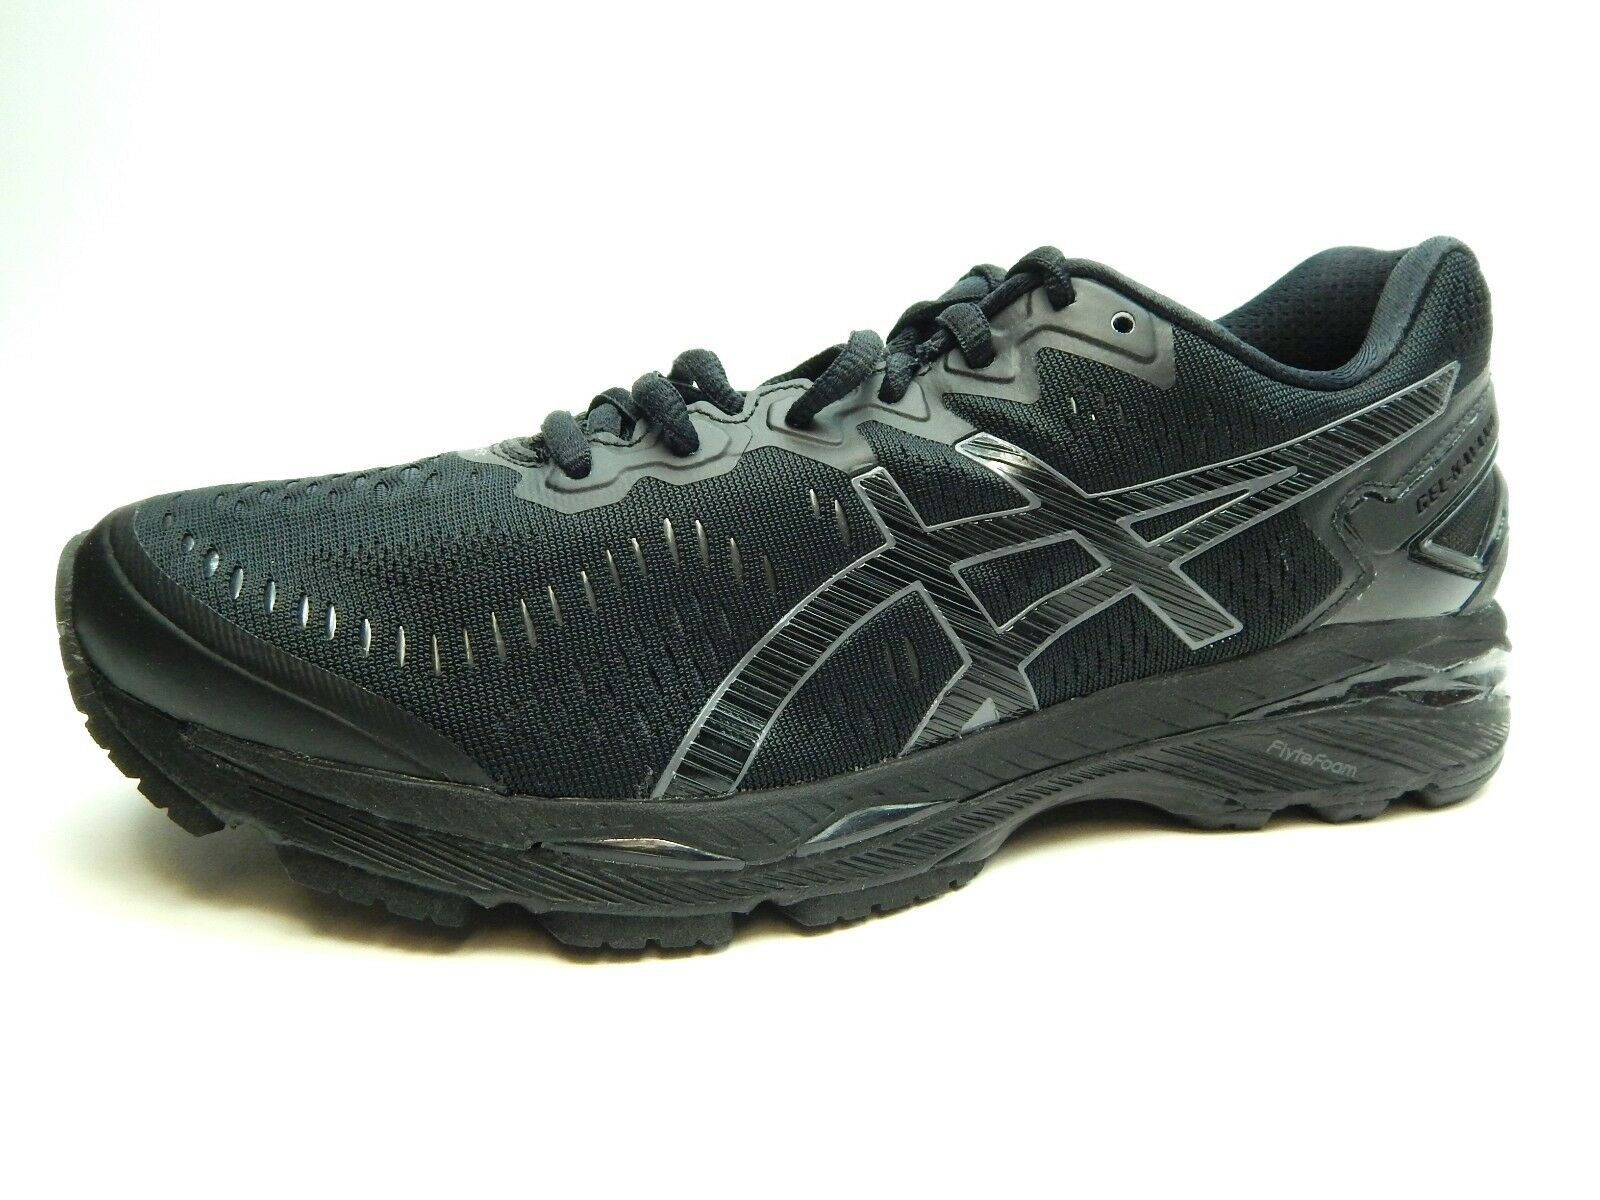 ASICS KAYANO 23 T646N 9099 Negro Onyx Carbono hombres zapatos y 8.5